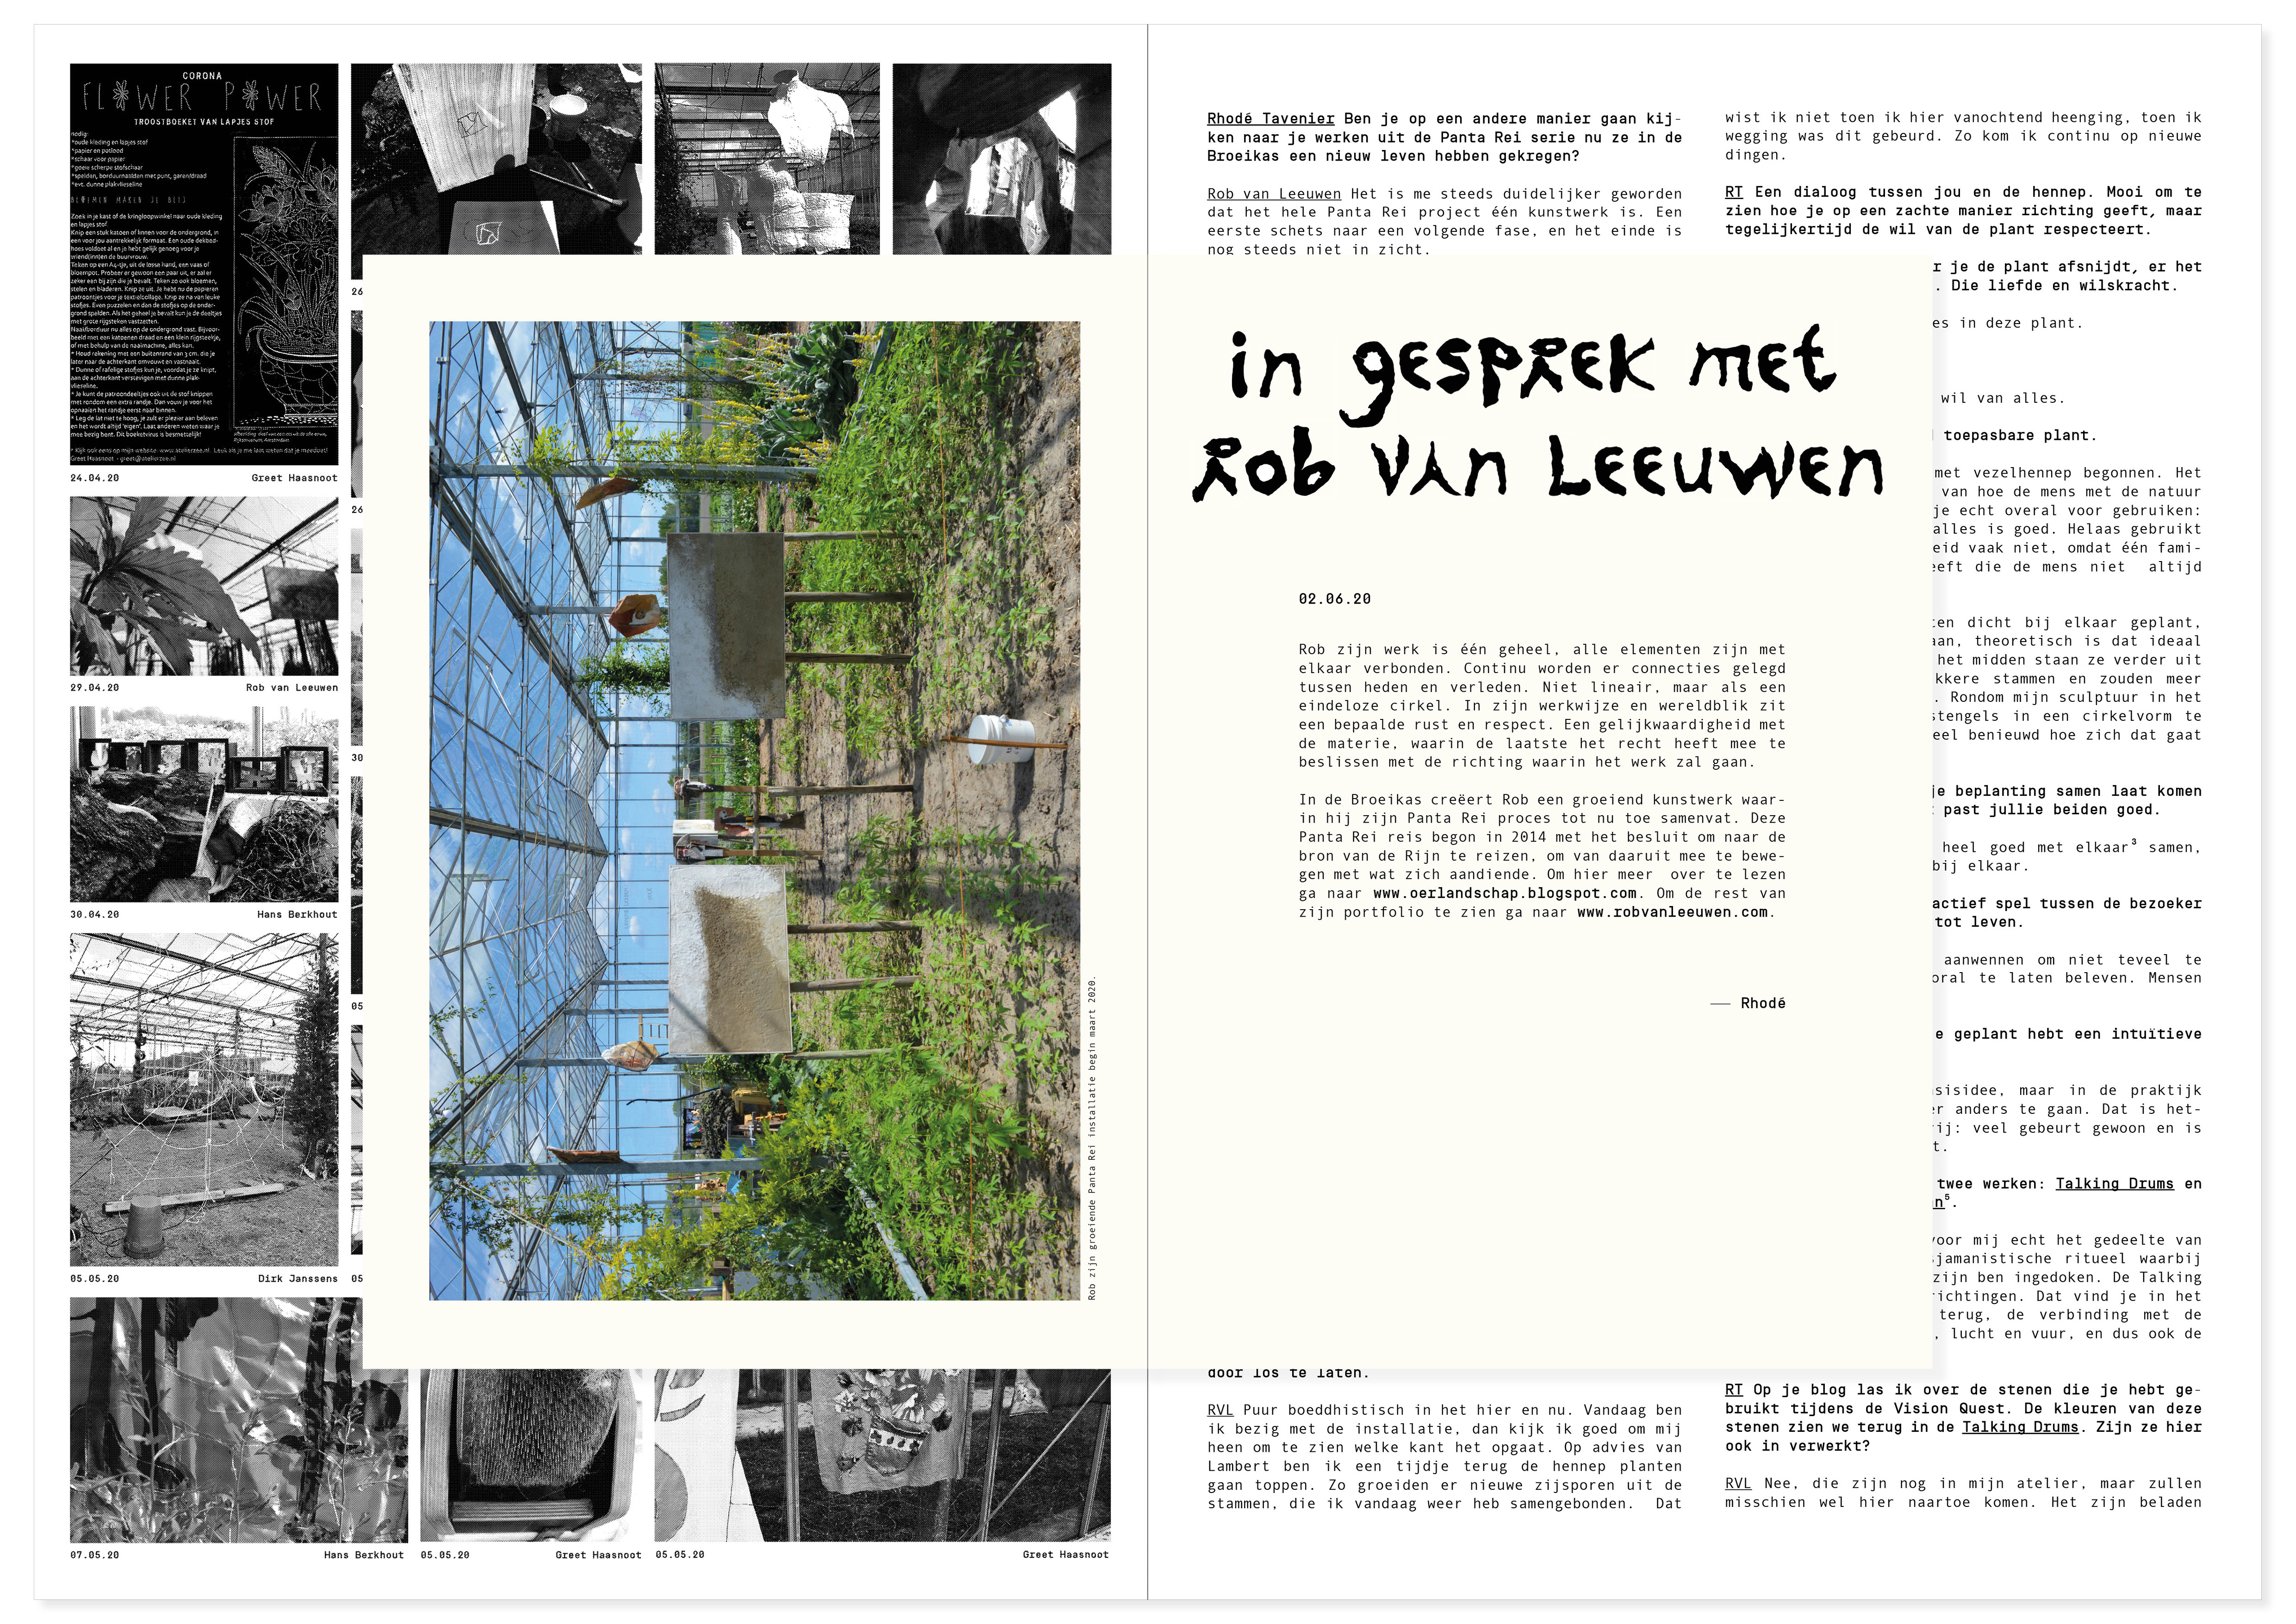 """For the first season in """"Het Broeikaseffect"""" / """"The Greenhouse Effect"""" I designed a publication. It contains a visual logbook which shows the growth and developments in the greenhouse. I've interviewed 3 artists about their working process. Concept in collaboration with Sanne van der Meij ---> www.sannevandermeij.com The organic letter shapes are made with leftover mandarin peels. 2020."""